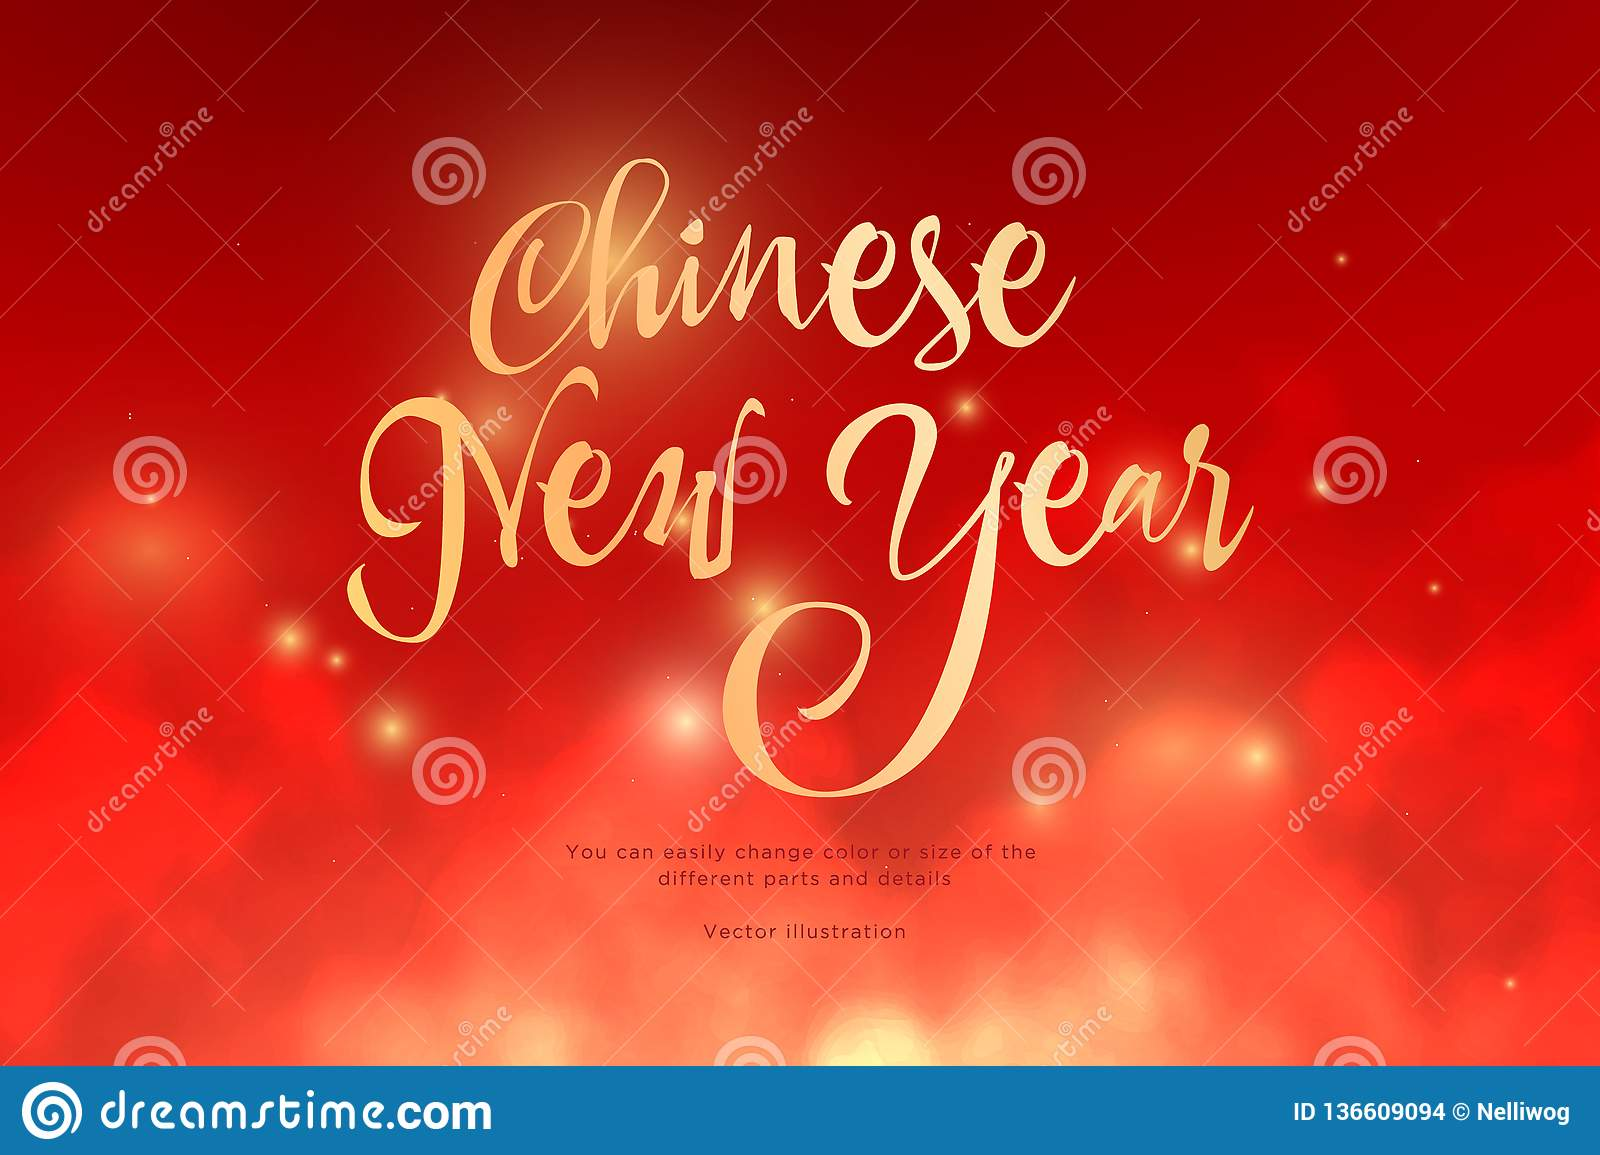 Text Chinese New Year golden color in the clouds.Low poly wireframe art on red background.Concept for holiday or magic or miracle.